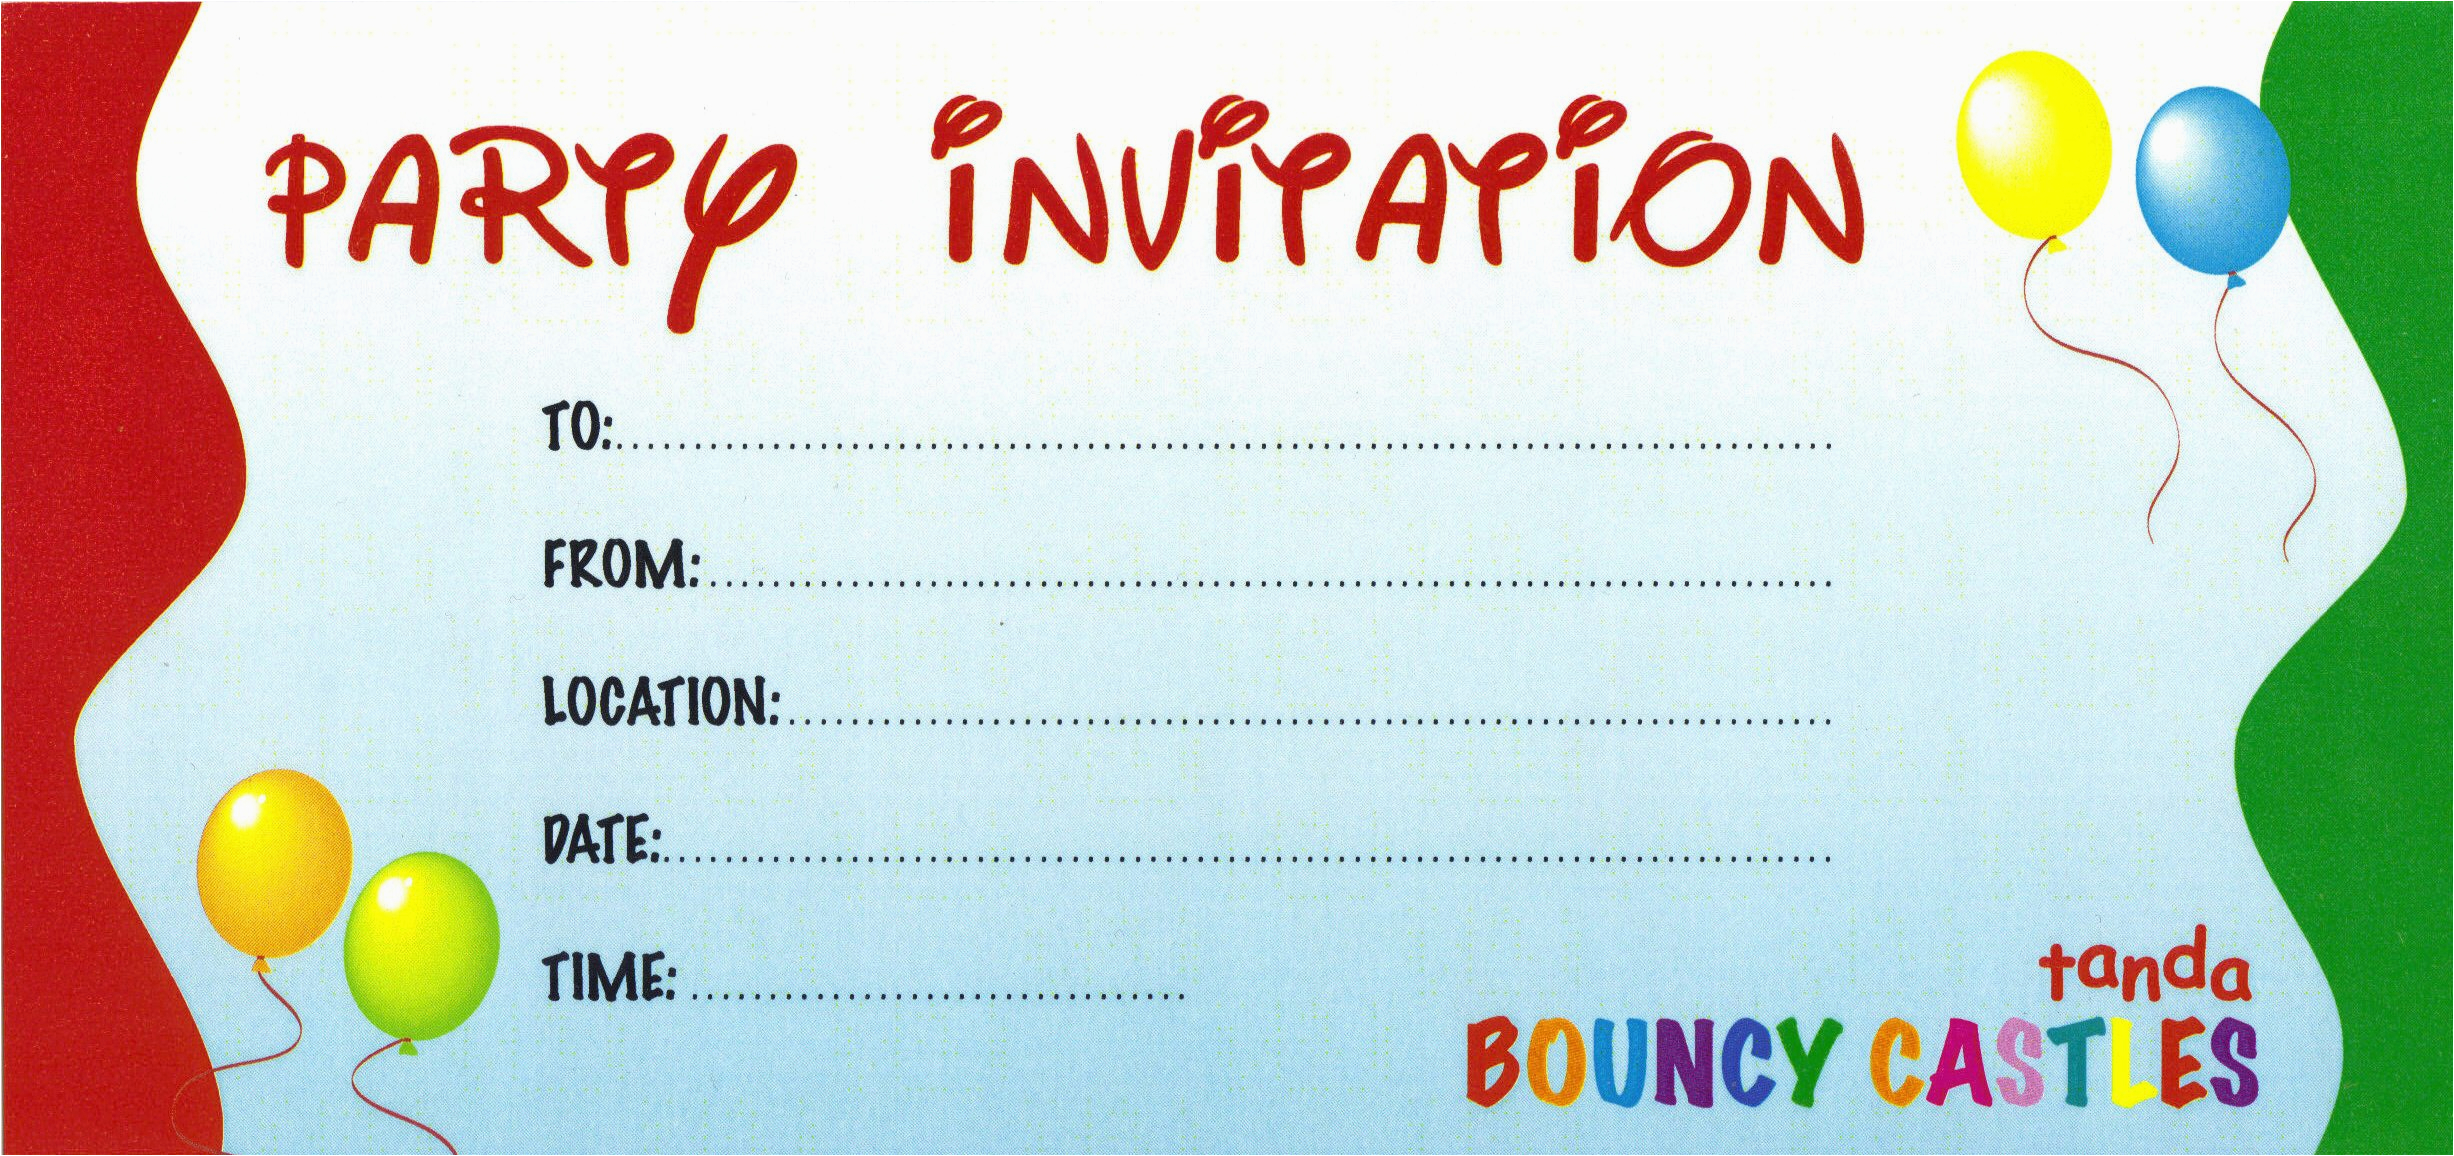 Create A Birthday Card with Photos Free Design Your Own Birthday Invitations Create Your Own